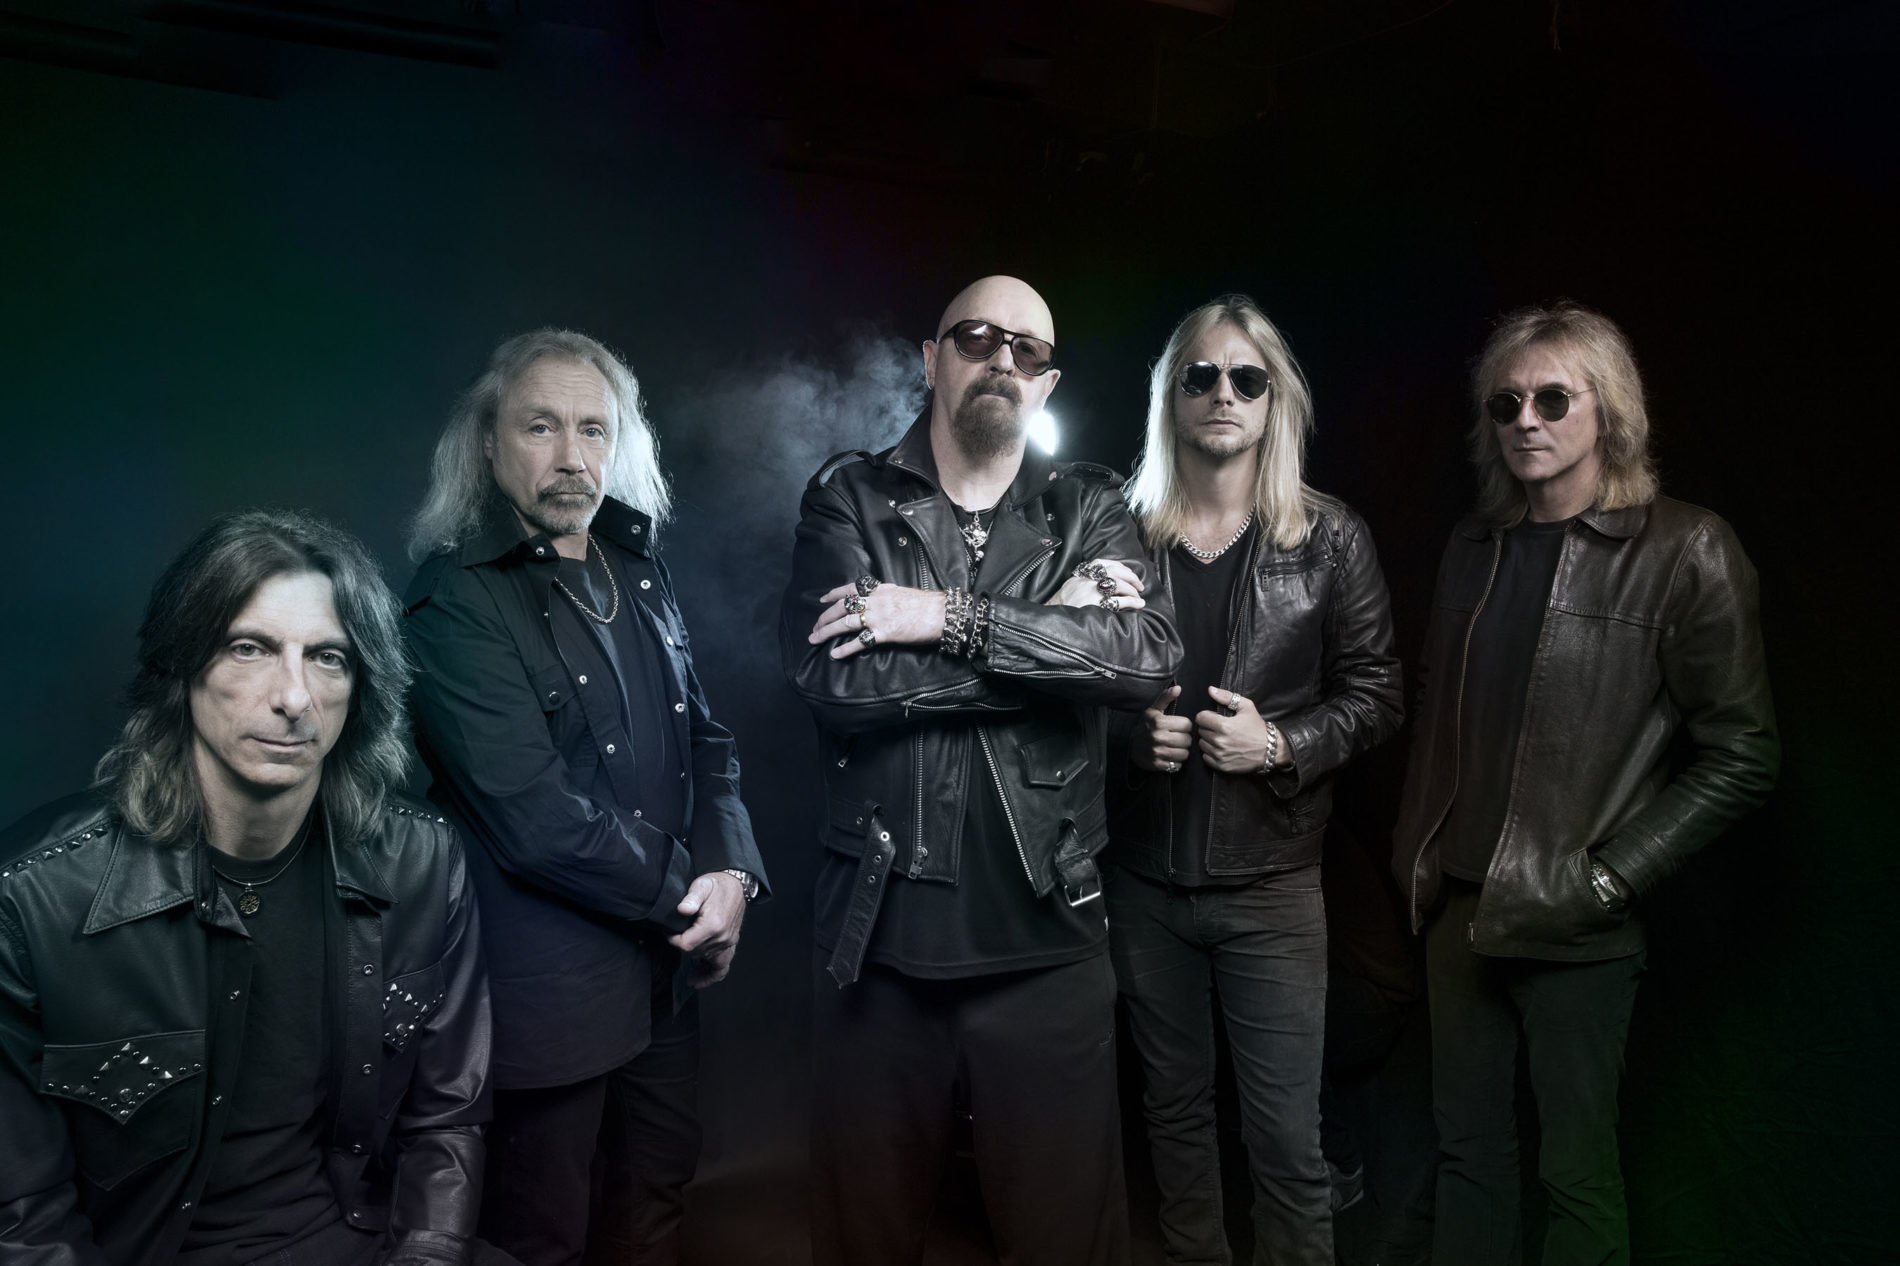 Judas Priest – Tour 2020